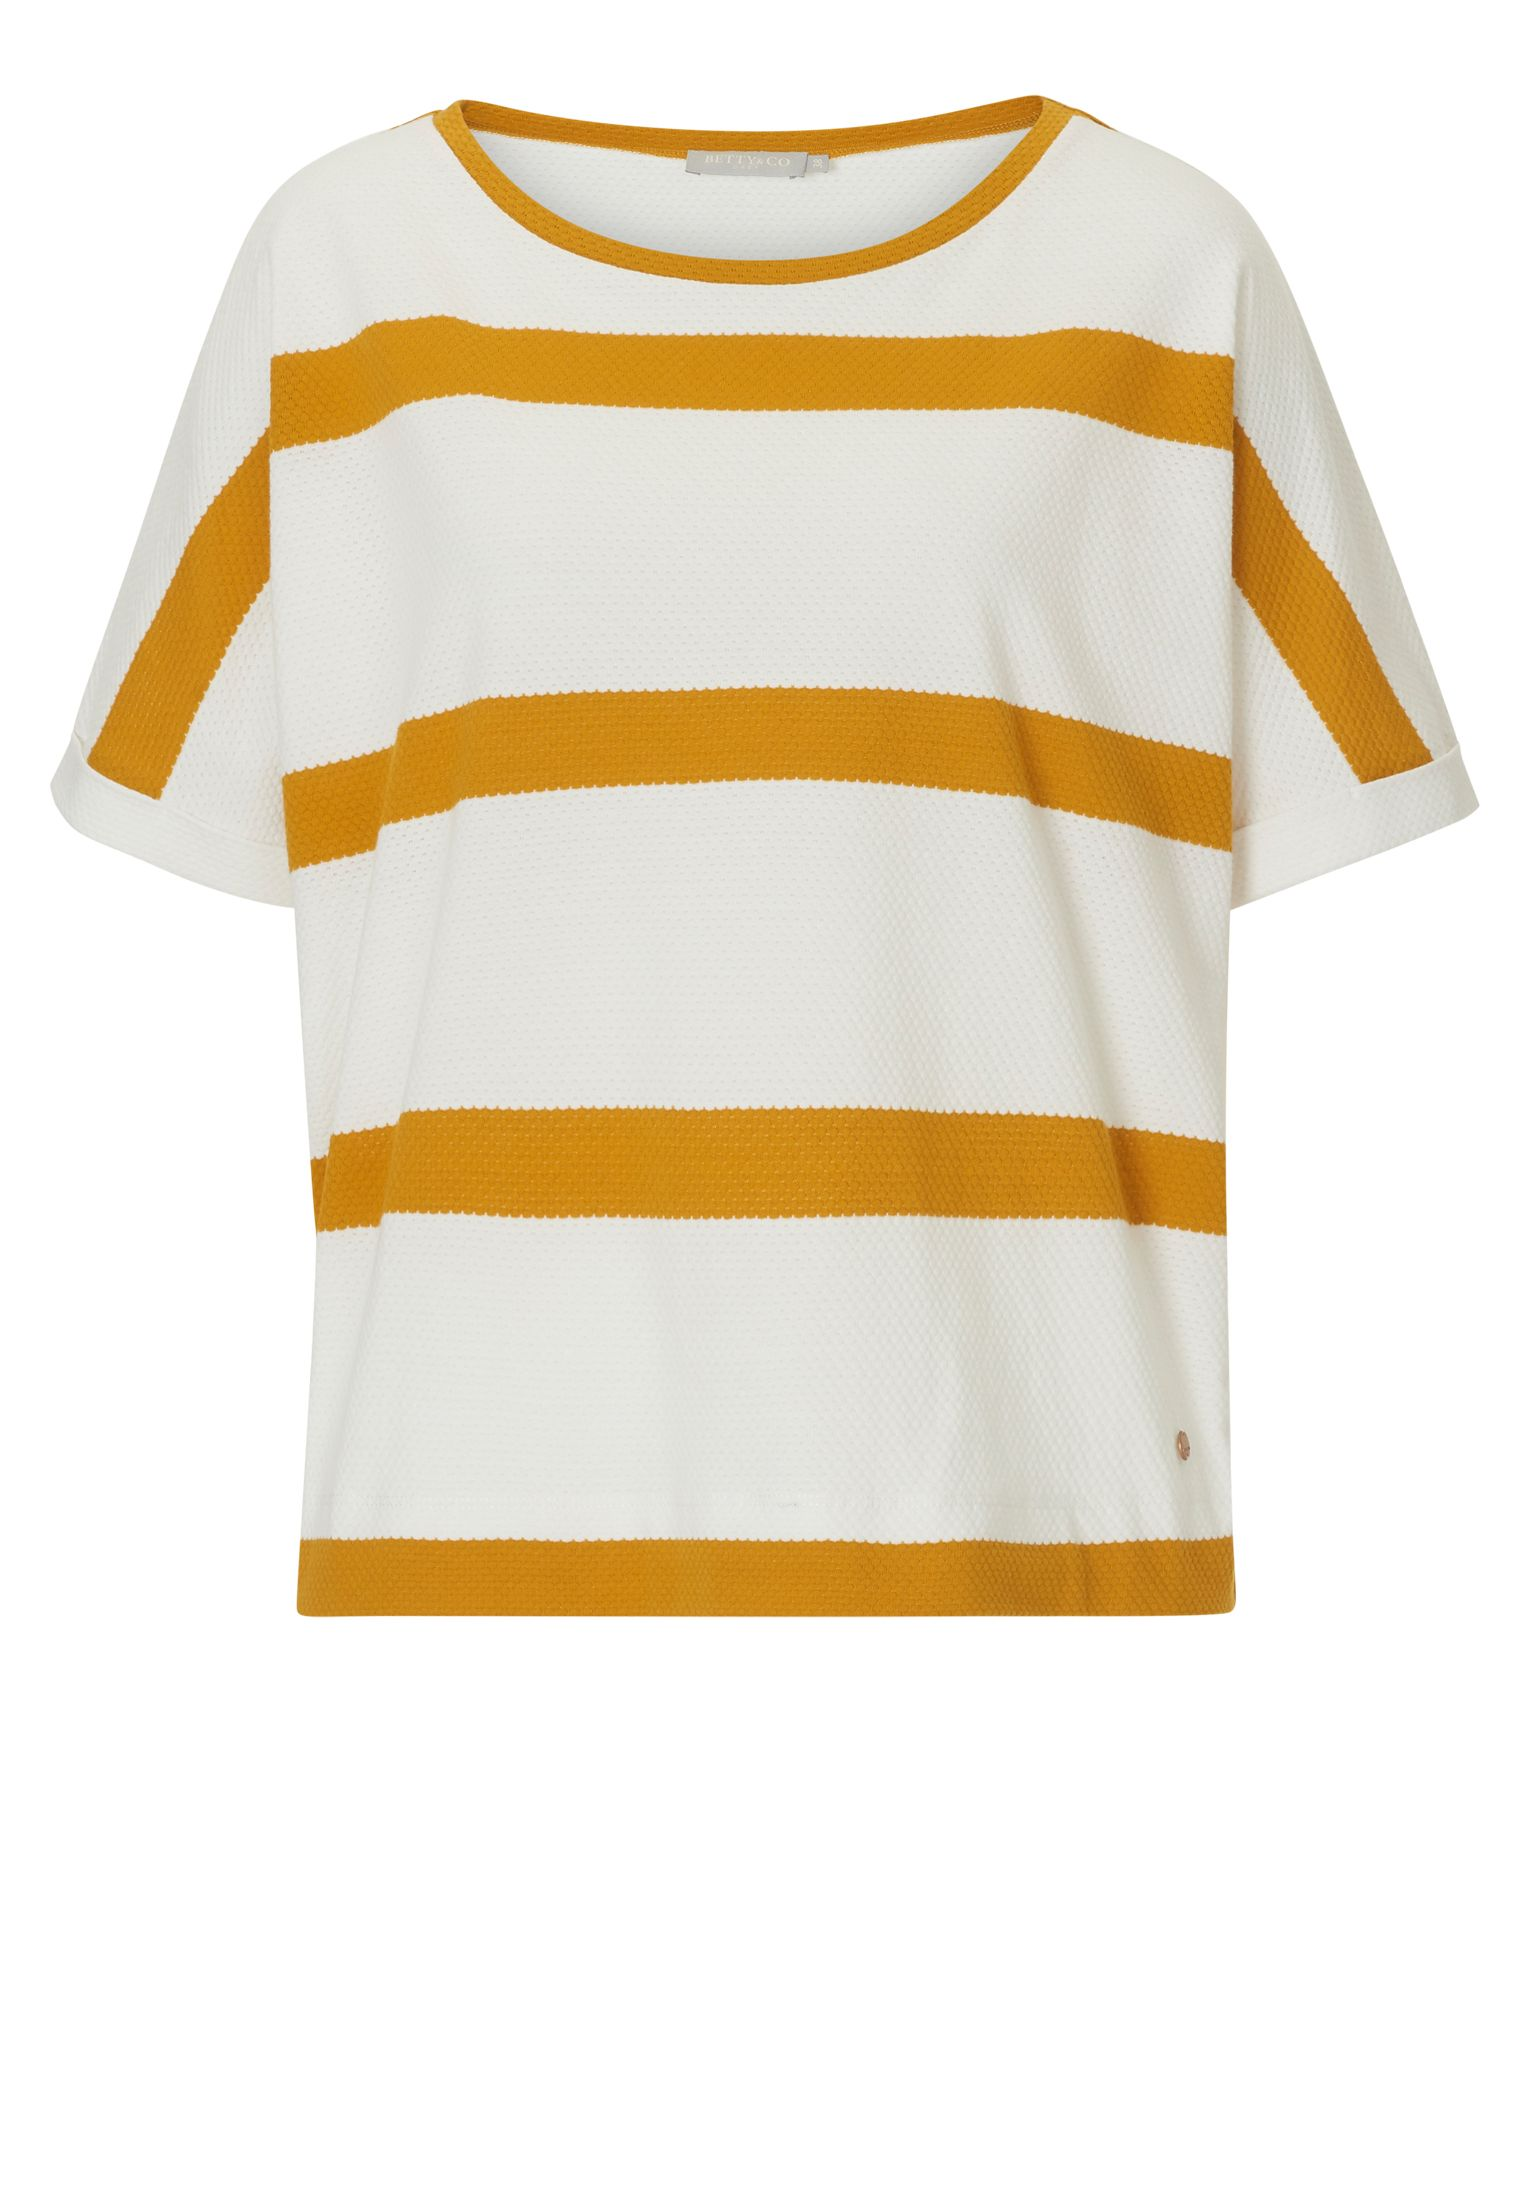 Betty & Co. Textured striped top, White